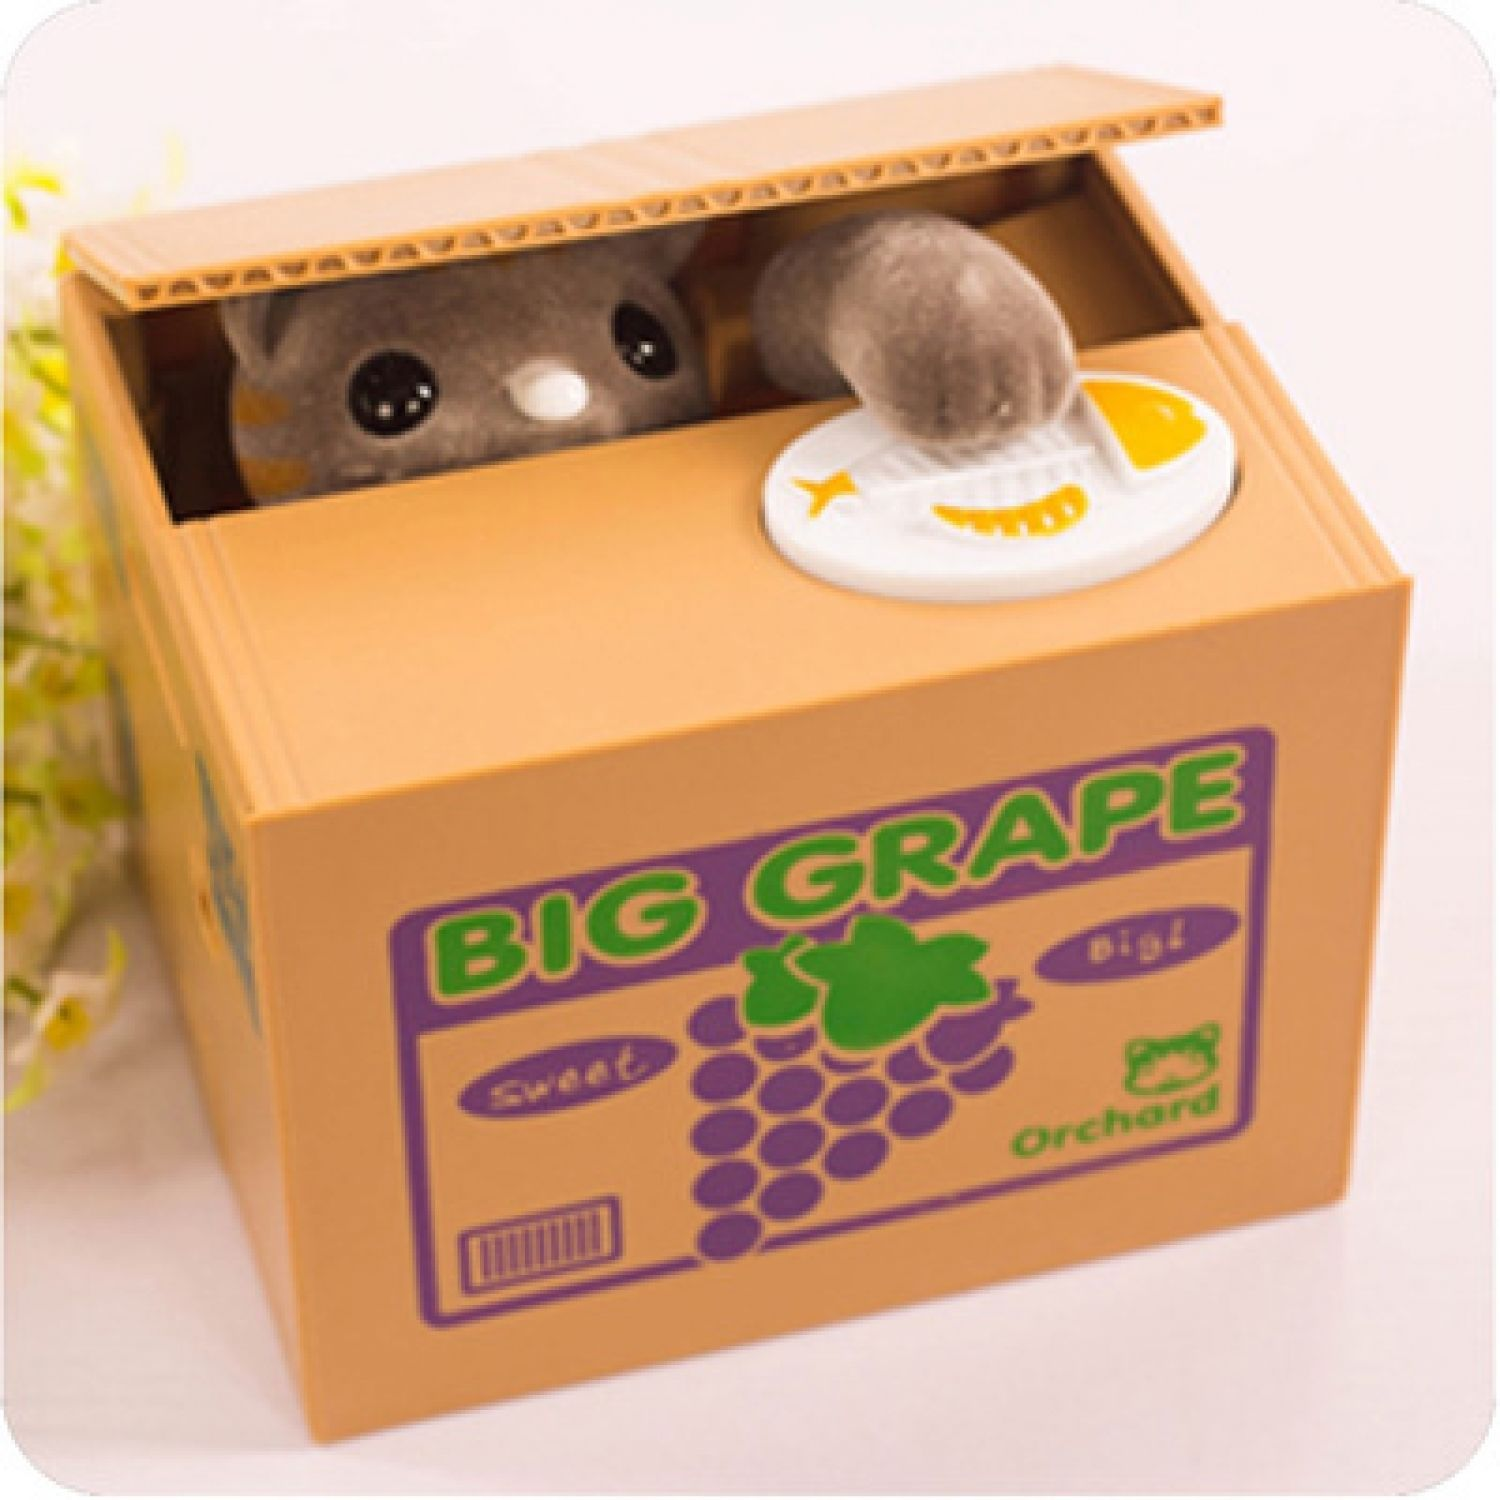 Toys For Adults Electronic Gadgets : Piggy bank automatic gadget geek waste time cartoon cat